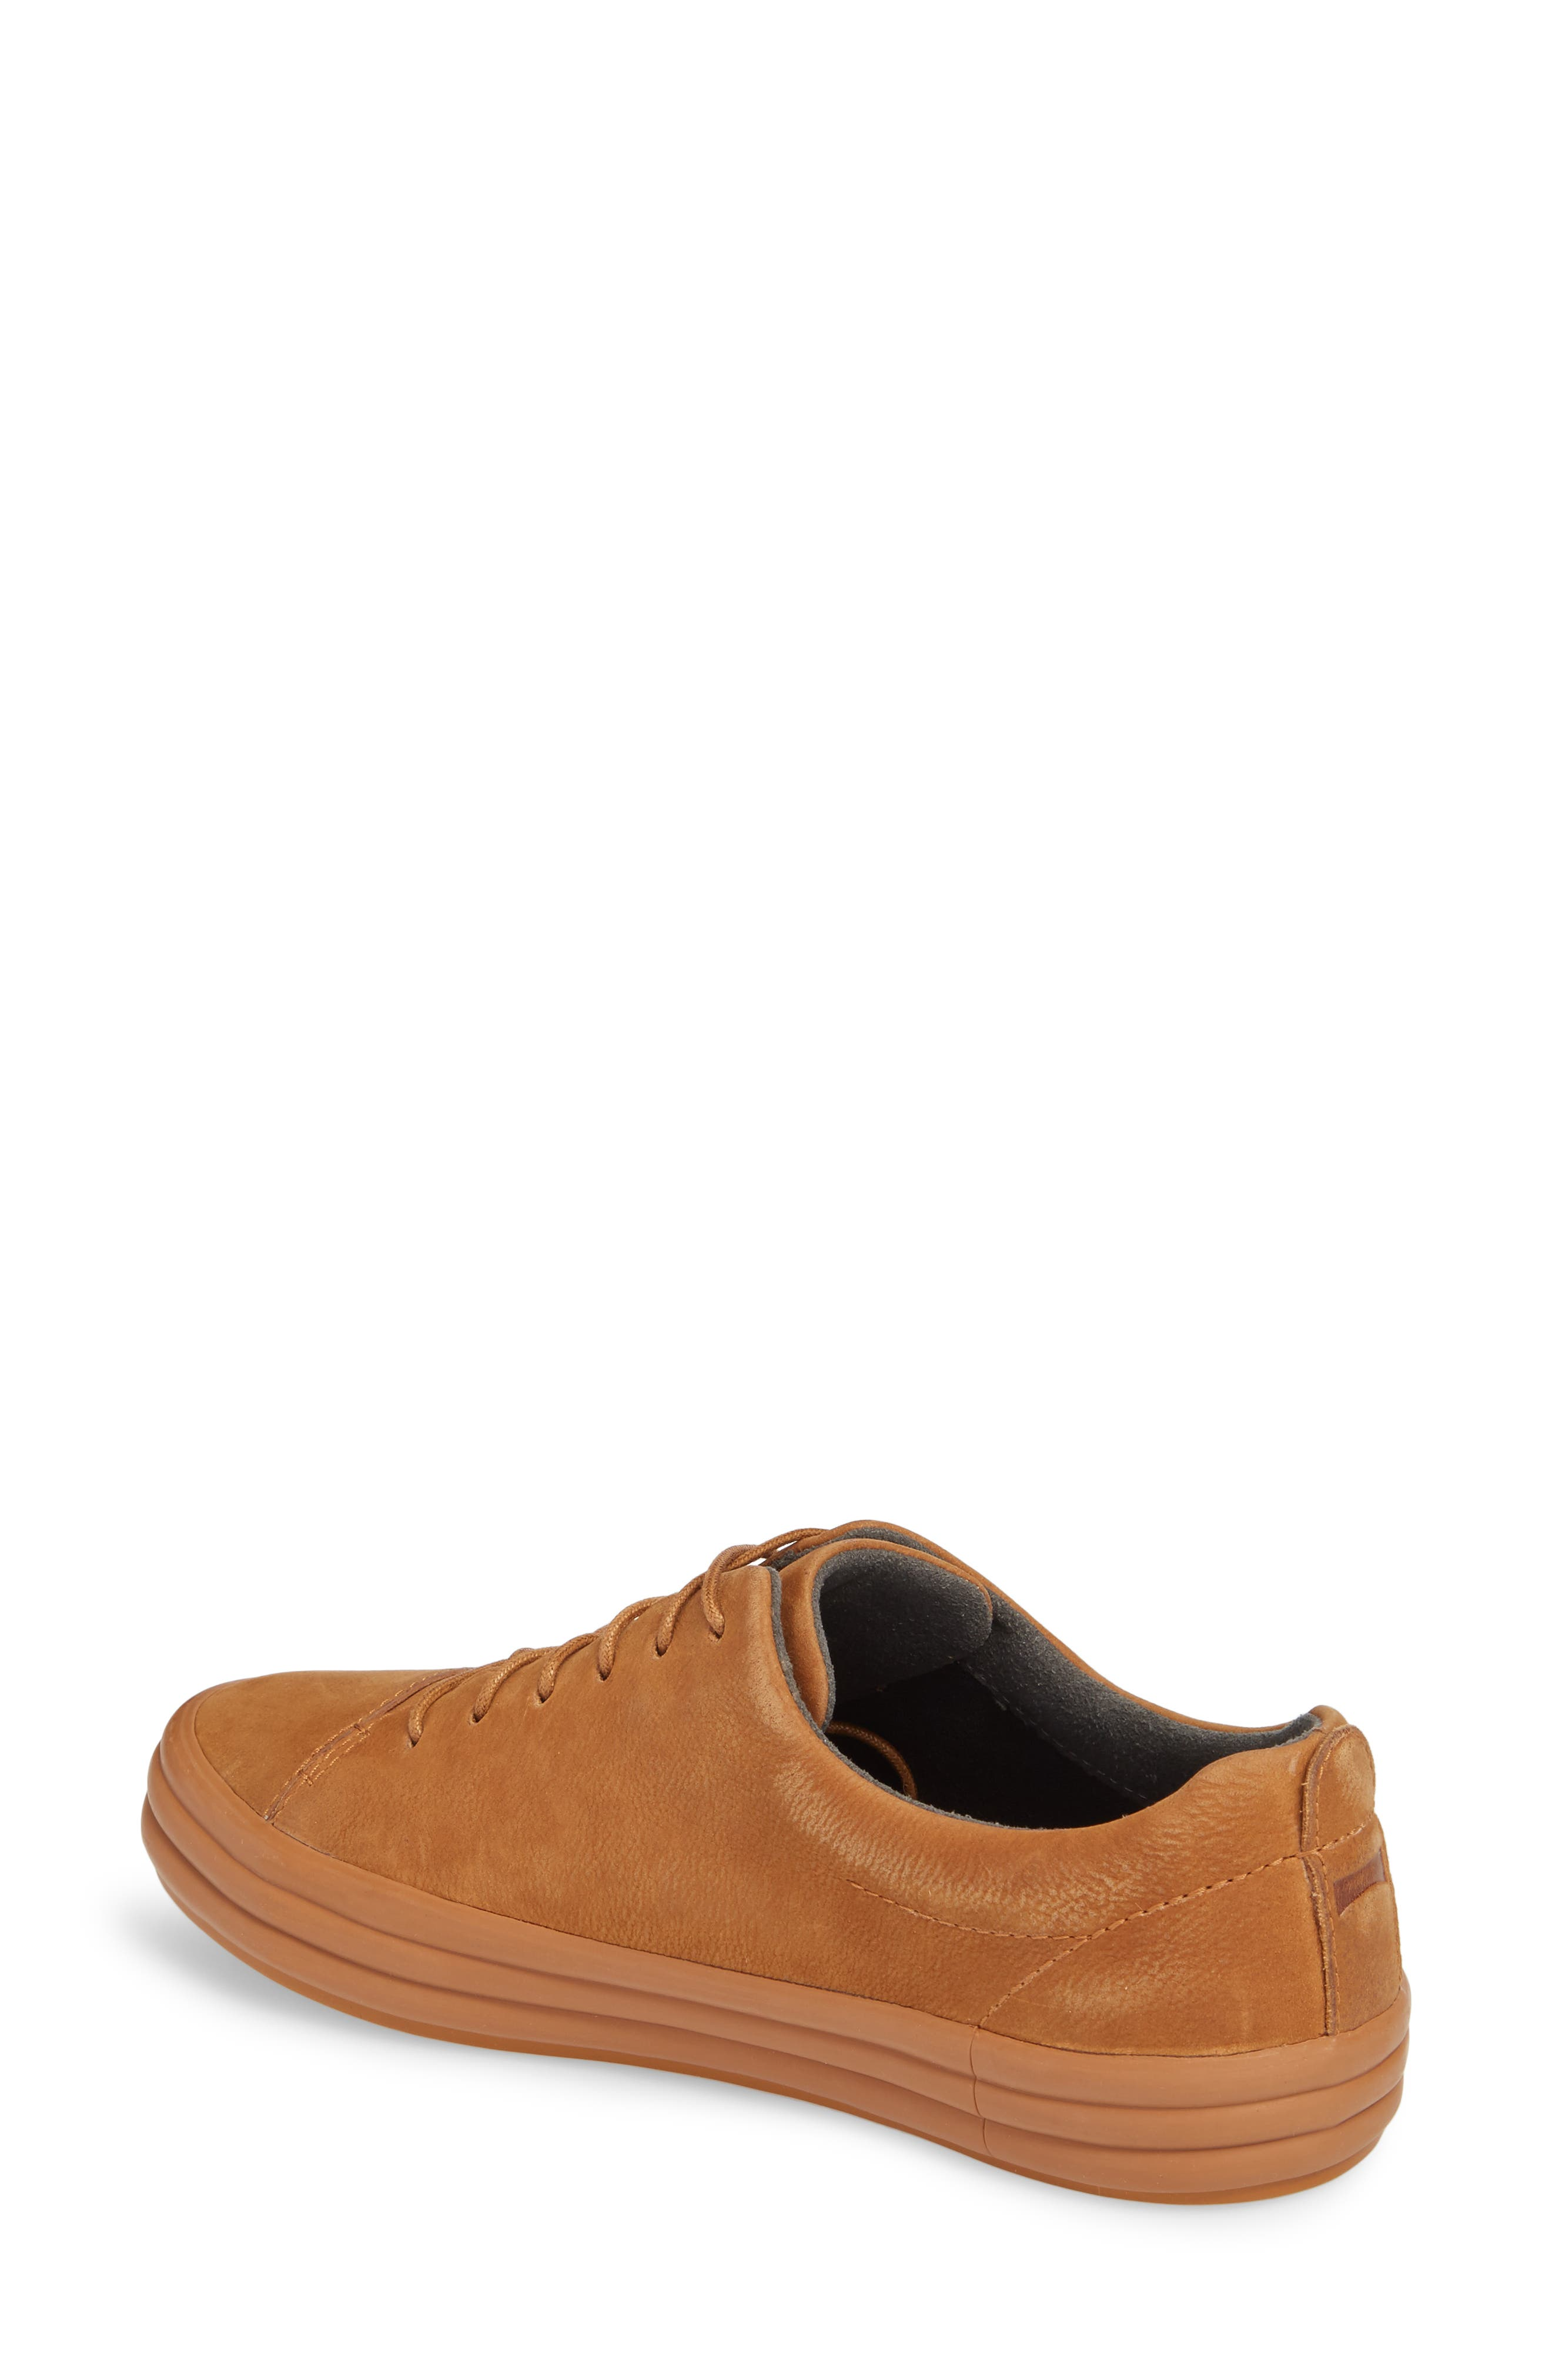 Hoops Sneaker,                             Alternate thumbnail 2, color,                             Rust/ Copper Leather